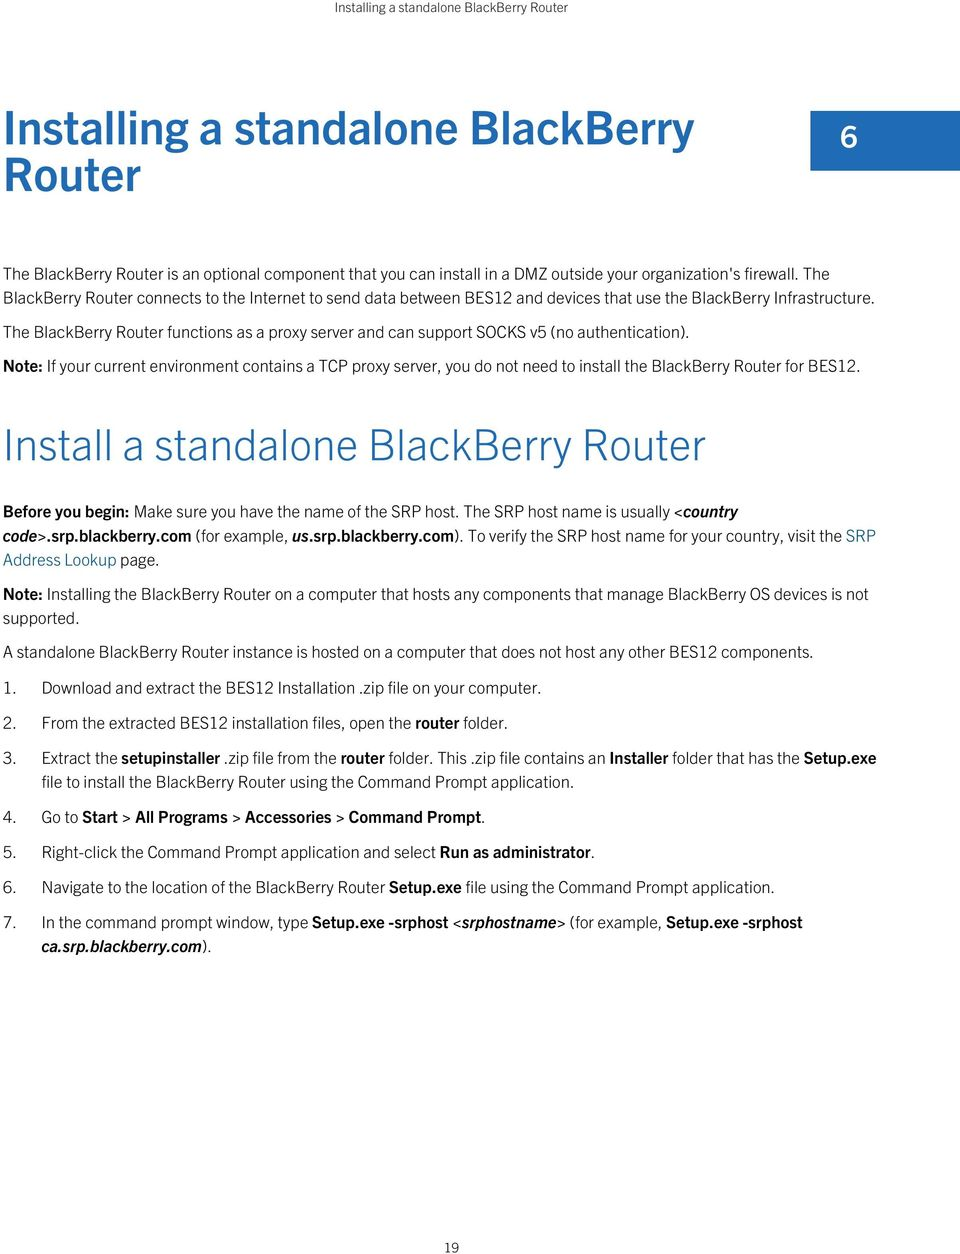 The BlackBerry Router functions as a proxy server and can support SOCKS v5 (no authentication).